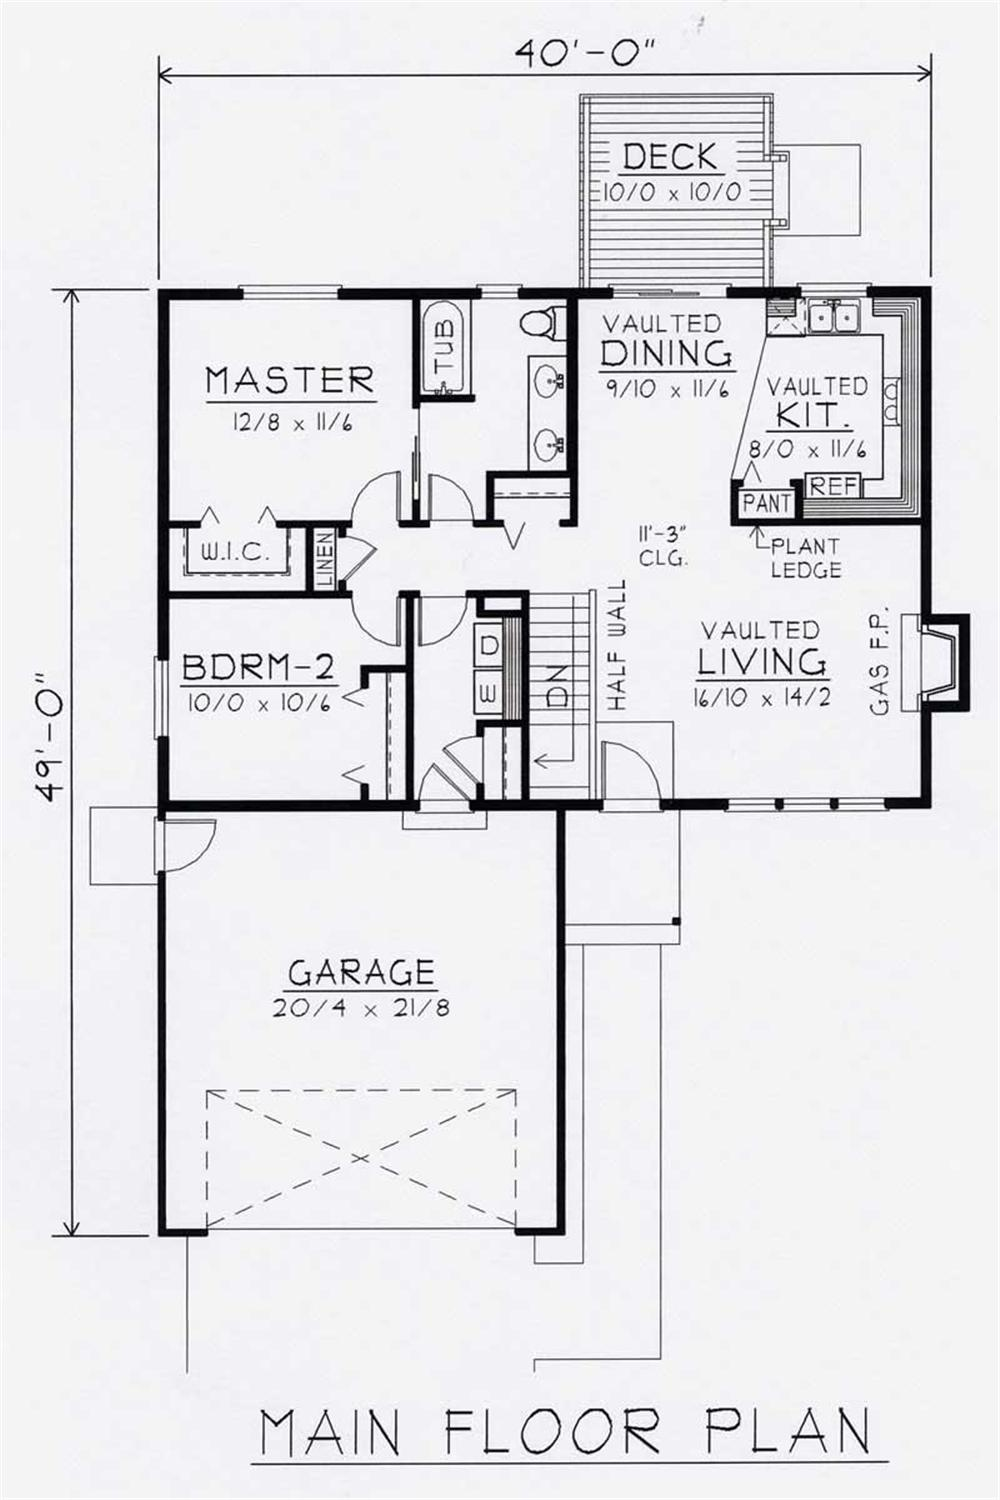 Large Images For House Plan 162 1012